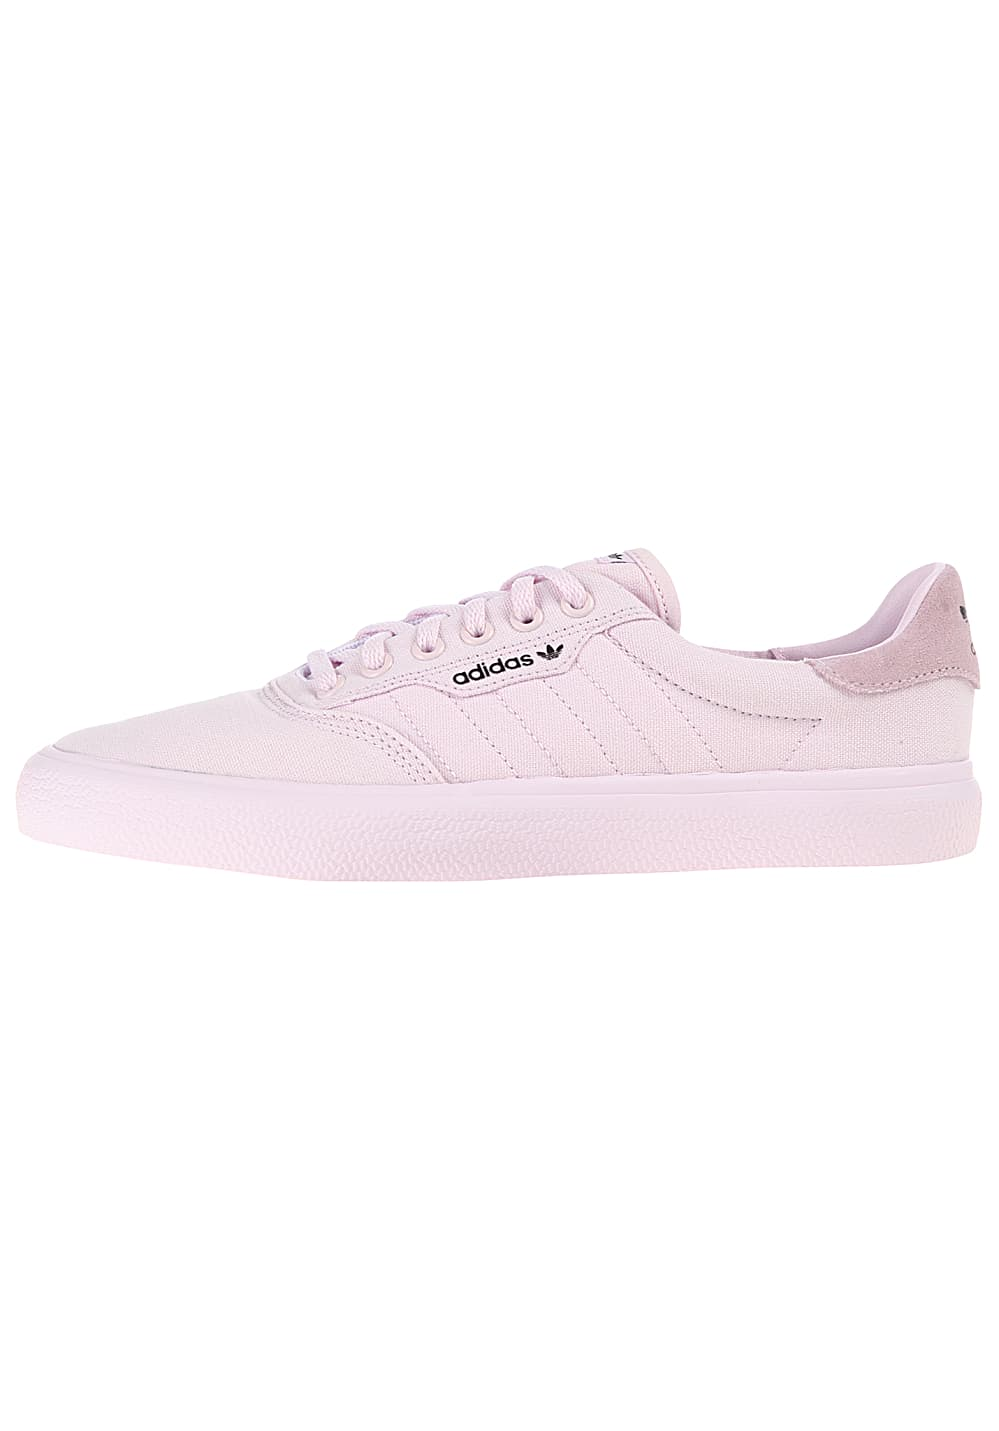 Planet 3mc Pink Adidas Sports Skateboarding Sneaker zjLSGVqUMp